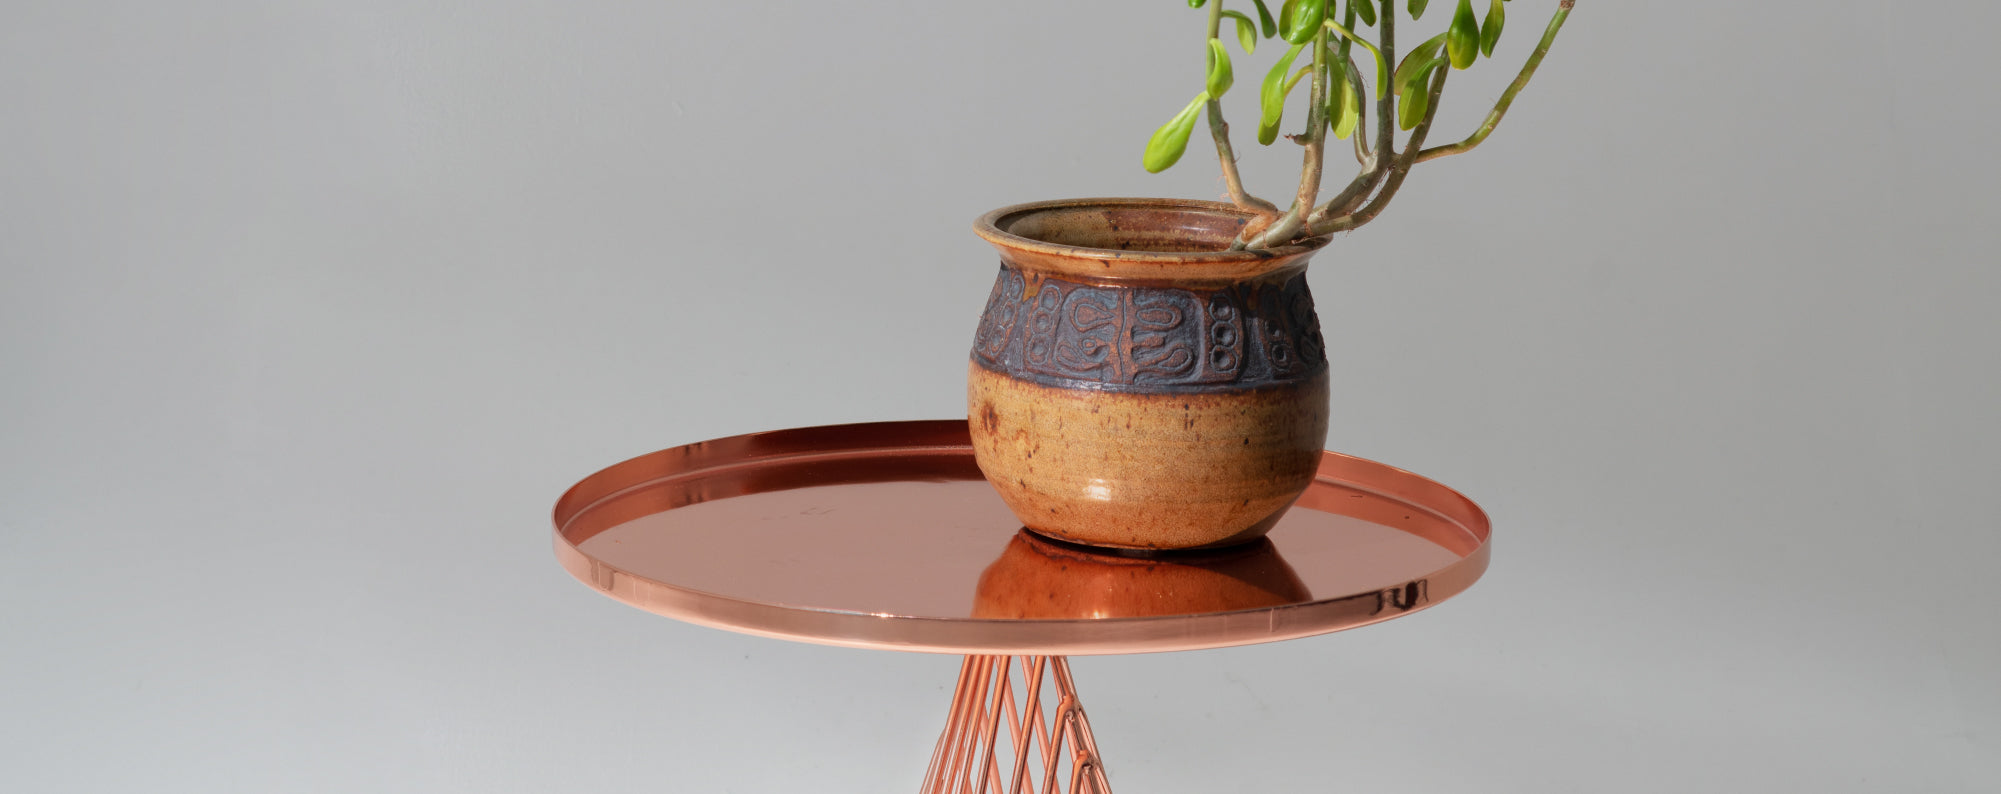 THE COPPER CONO TABLE<br />IS ON IT'S WAY!